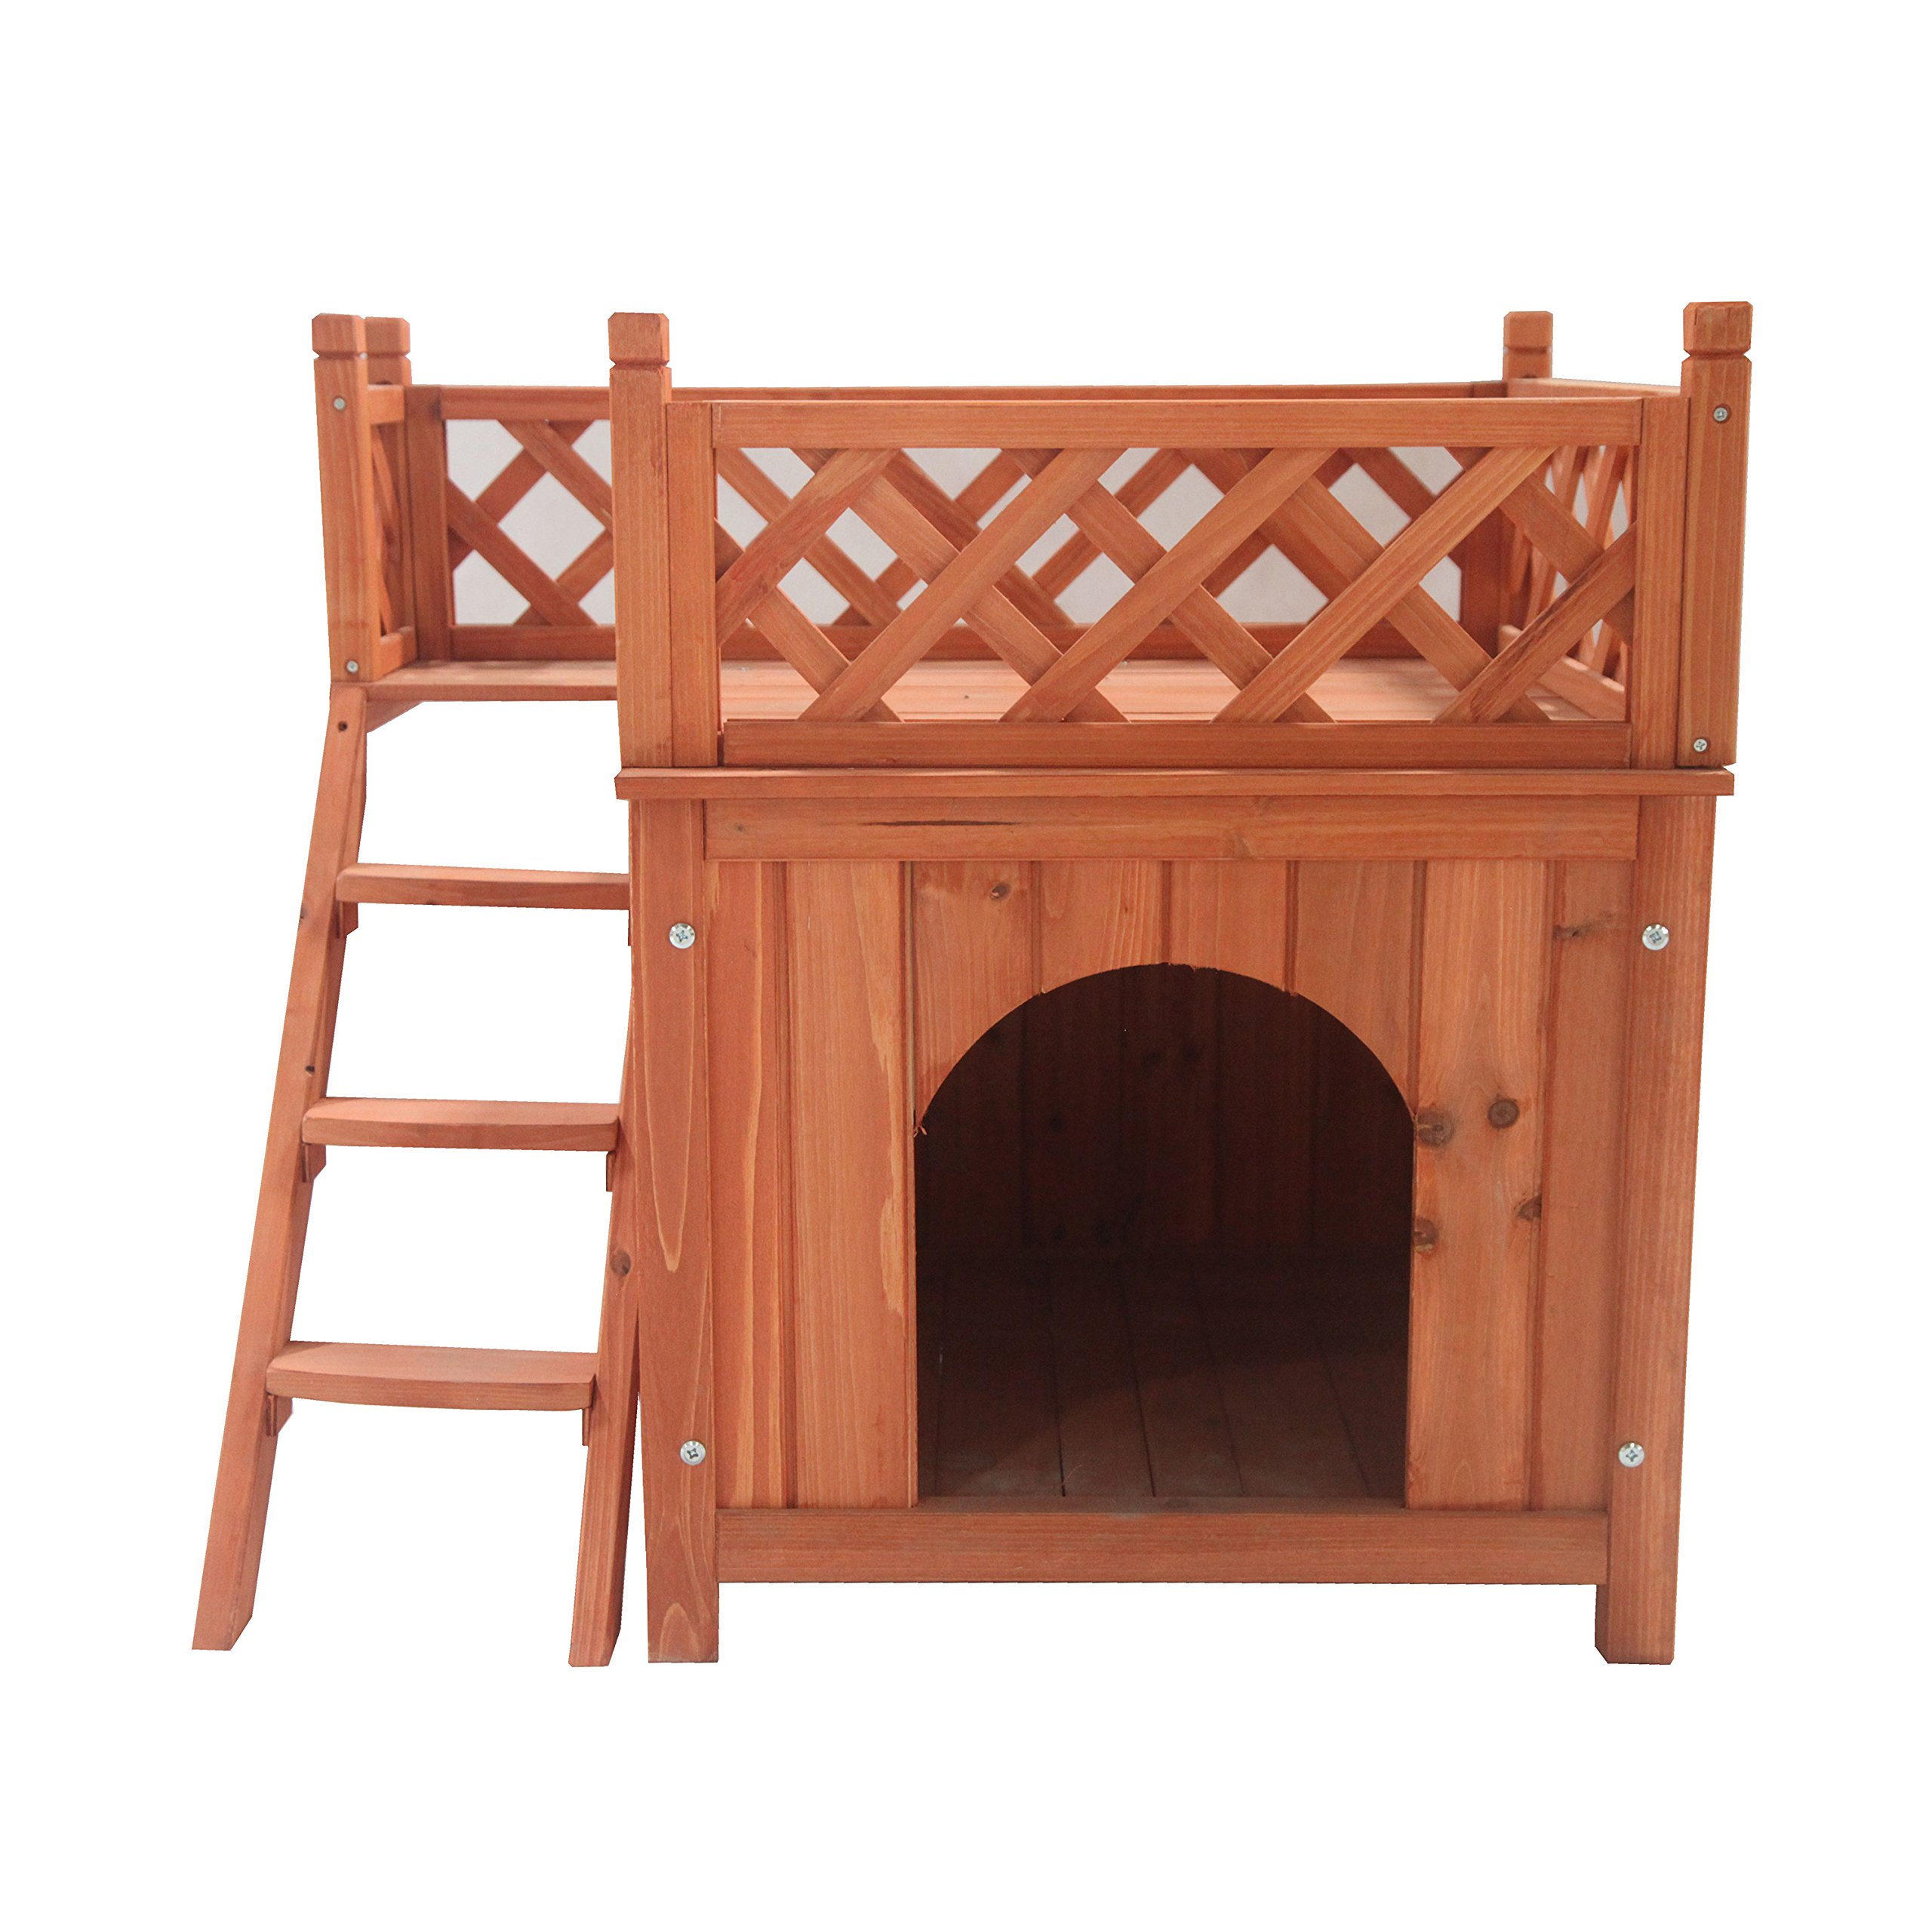 ALEKO DH28X20X25WD Wooden Cedar Pet Home for Small Pets Dogs Cats Side Steps and Balcony Kennel Lounger 28 x 20 x 25 Inches